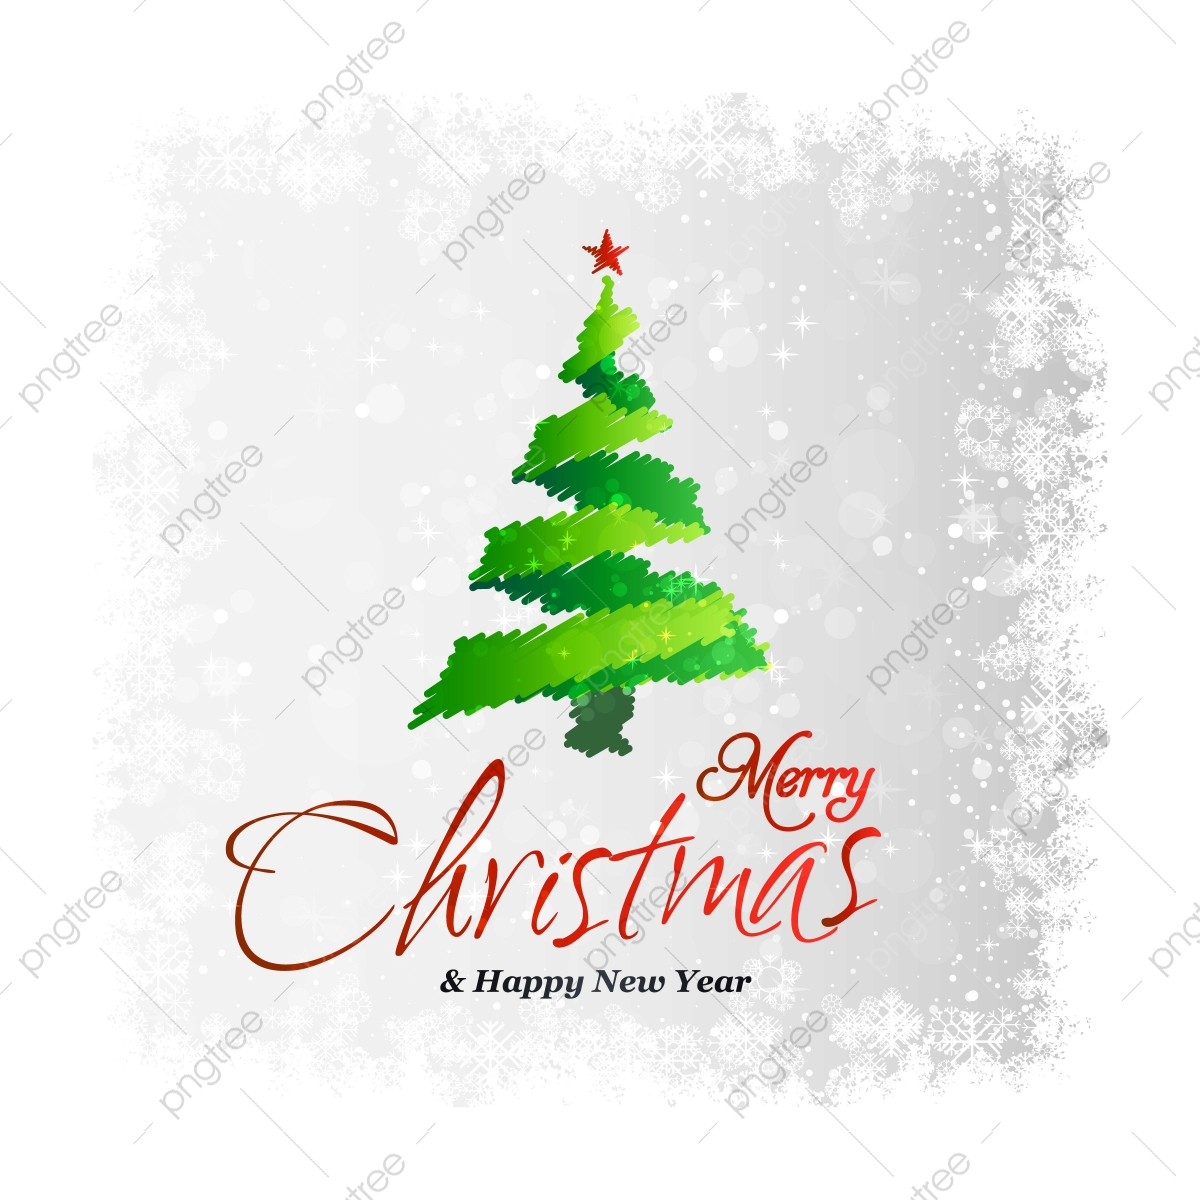 Christmas Card With Creative Elegant Design And Light